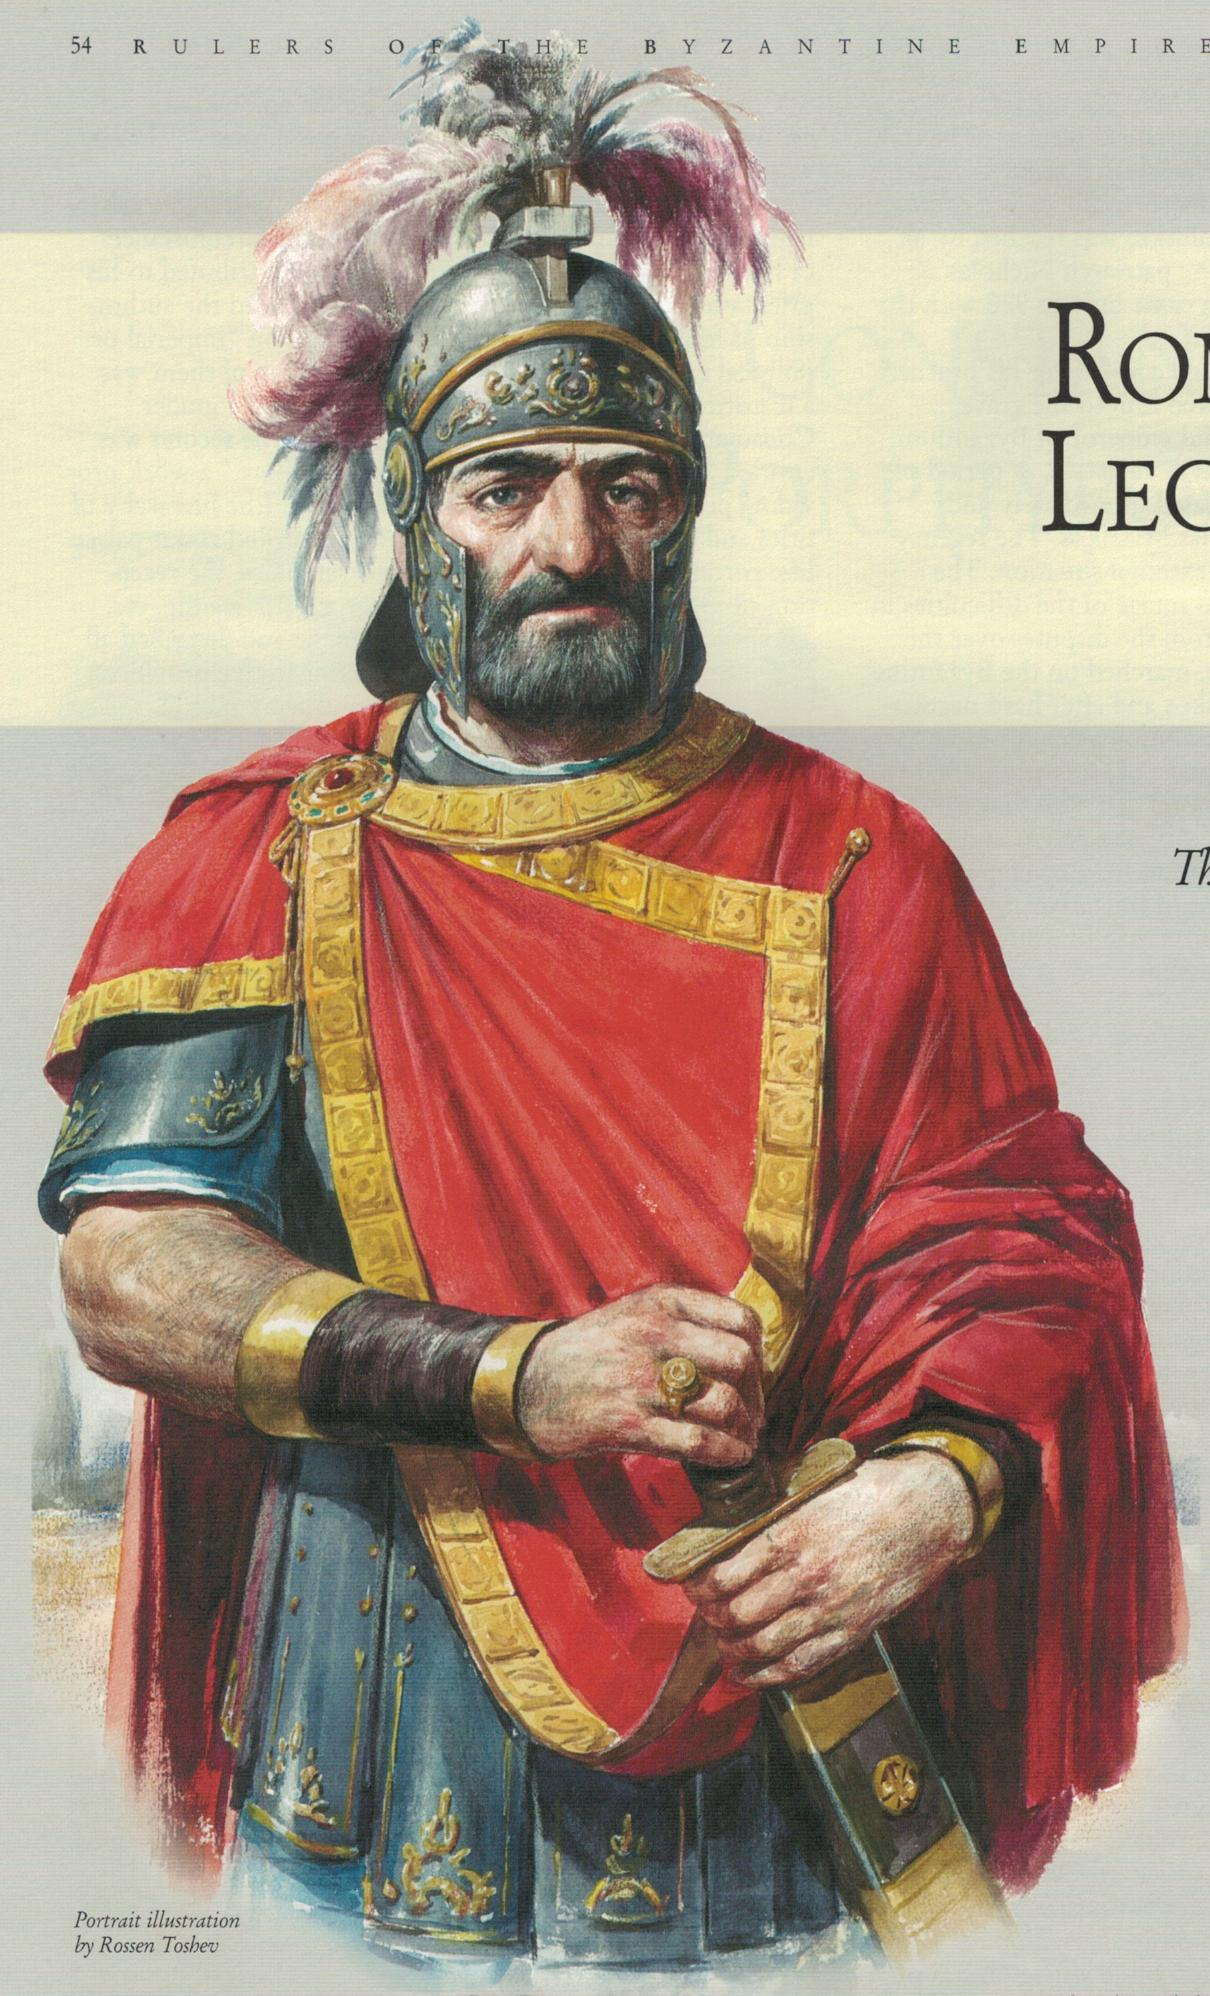 a history of the byzantine empire This history of the byzantine empire covers the history of the eastern roman empire from late antiquity until the fall of constantinople in 1453 ad several events from the 4th to 6th.